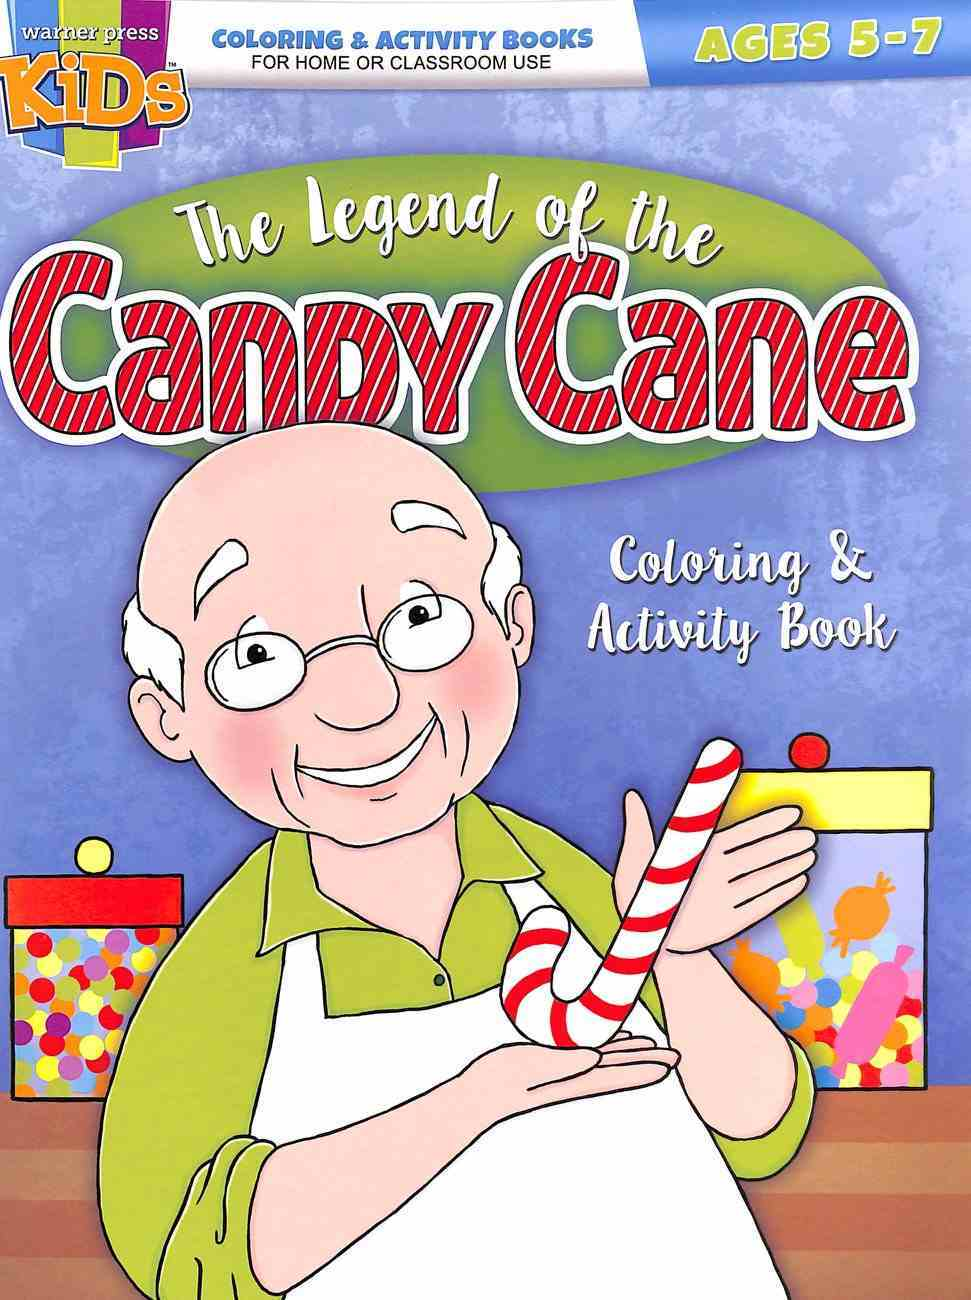 The Legend of the Candy Cane (Ages 5-7 Reproducible) (Warner Press Colouring & Activity Books Series) Paperback